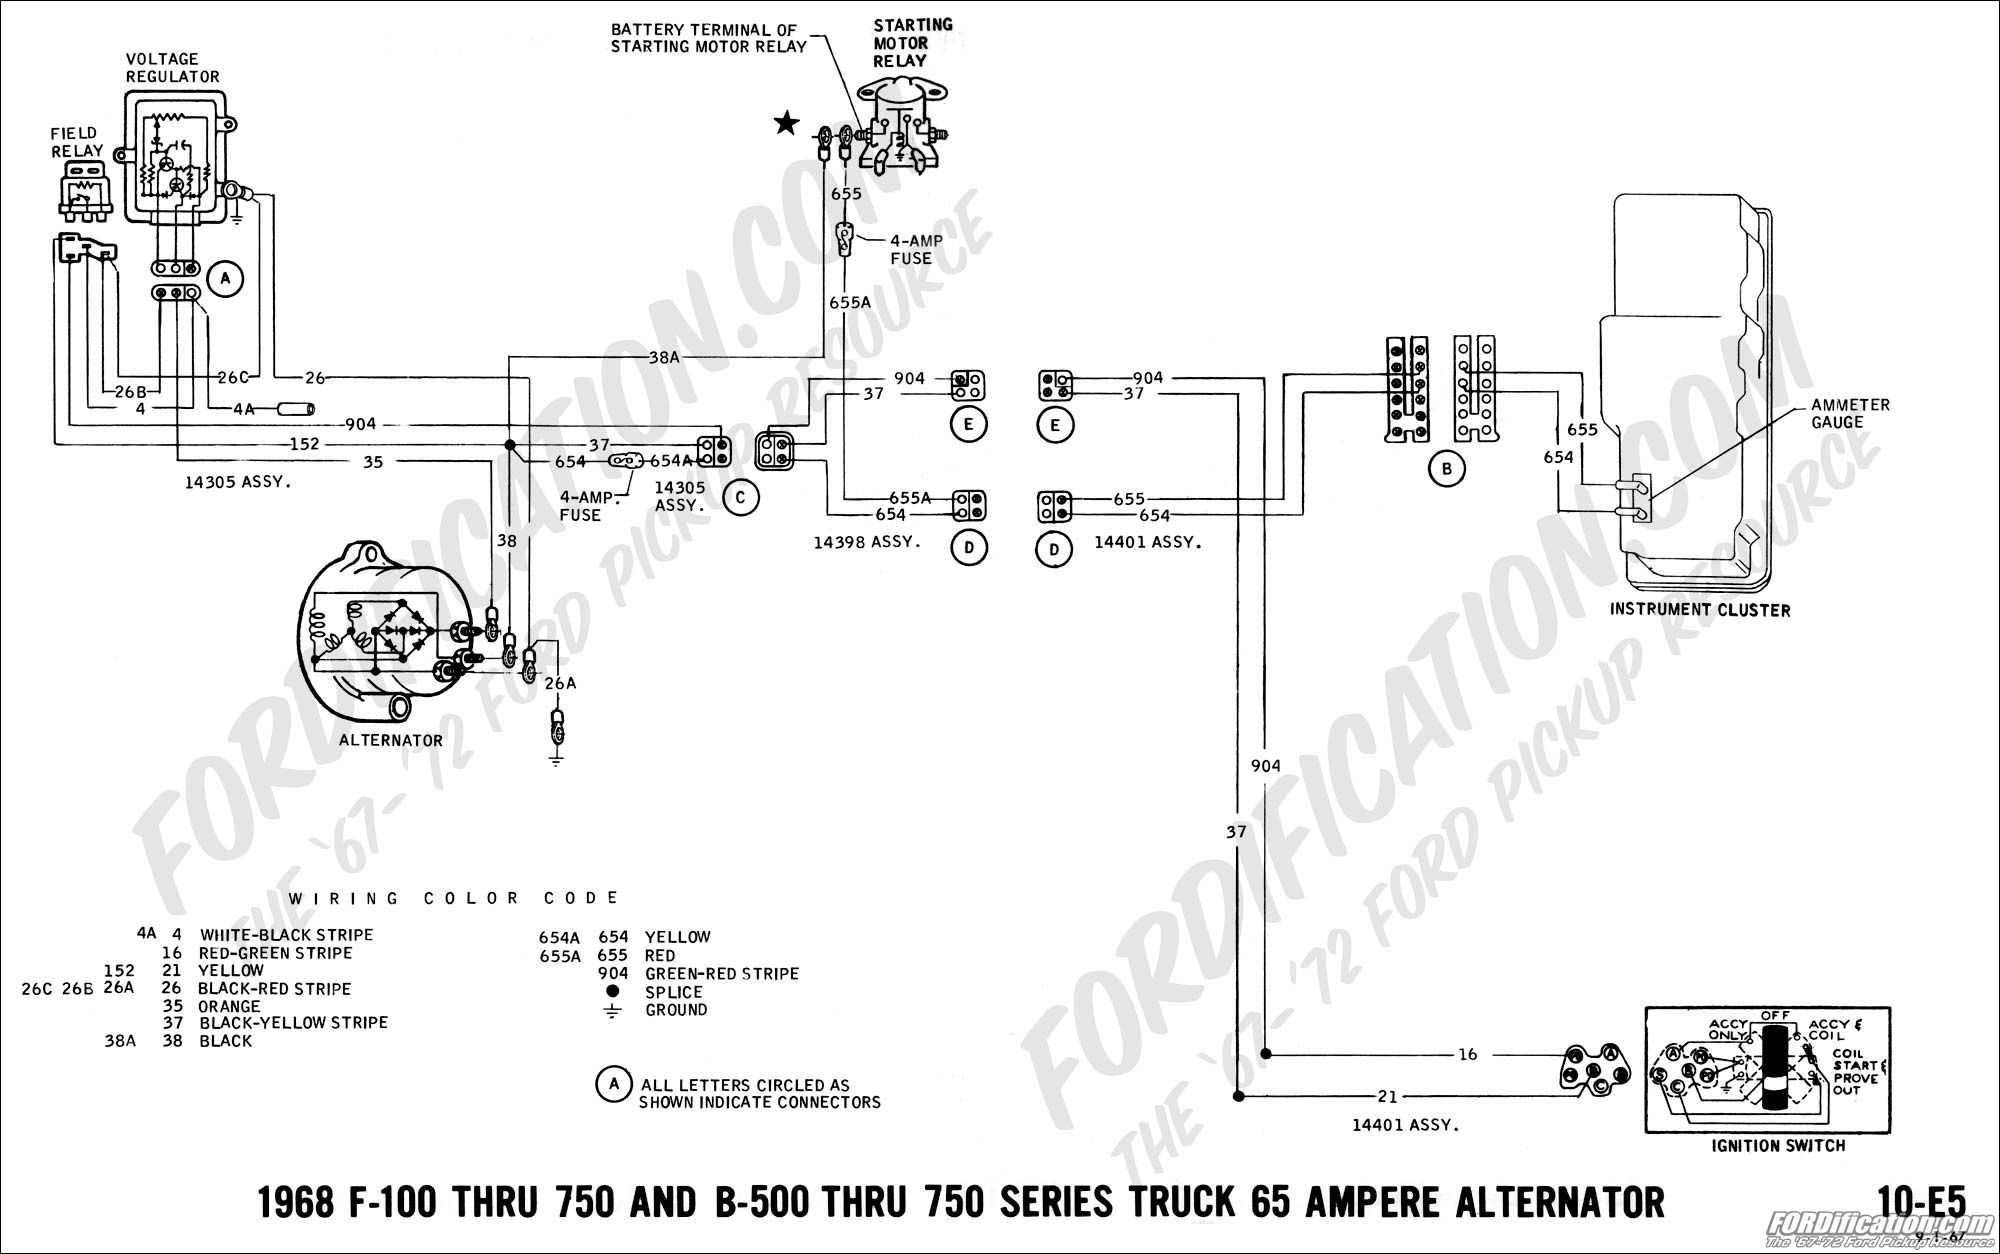 1971 Ford Alternator Wiring Diagram Simple Wiring Diagram Ford 3 Wire  Alternator Diagram 1956 Ford Alternator Wiring Diagram